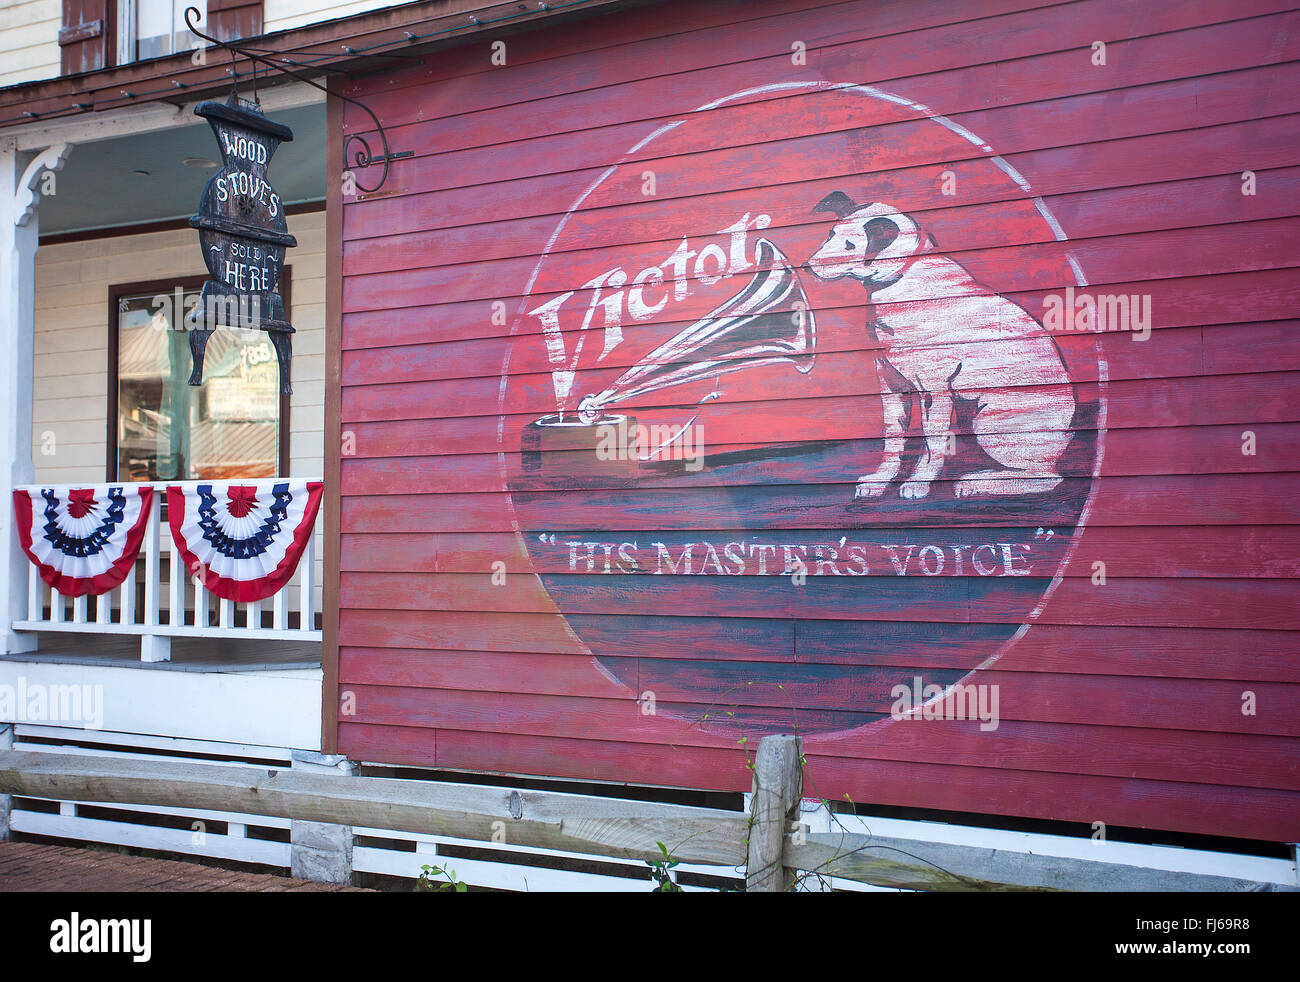 Images of a metal sign and the painted 'Victor' Logo and a fence with bunting on a shop that sells Wood - Stock Image